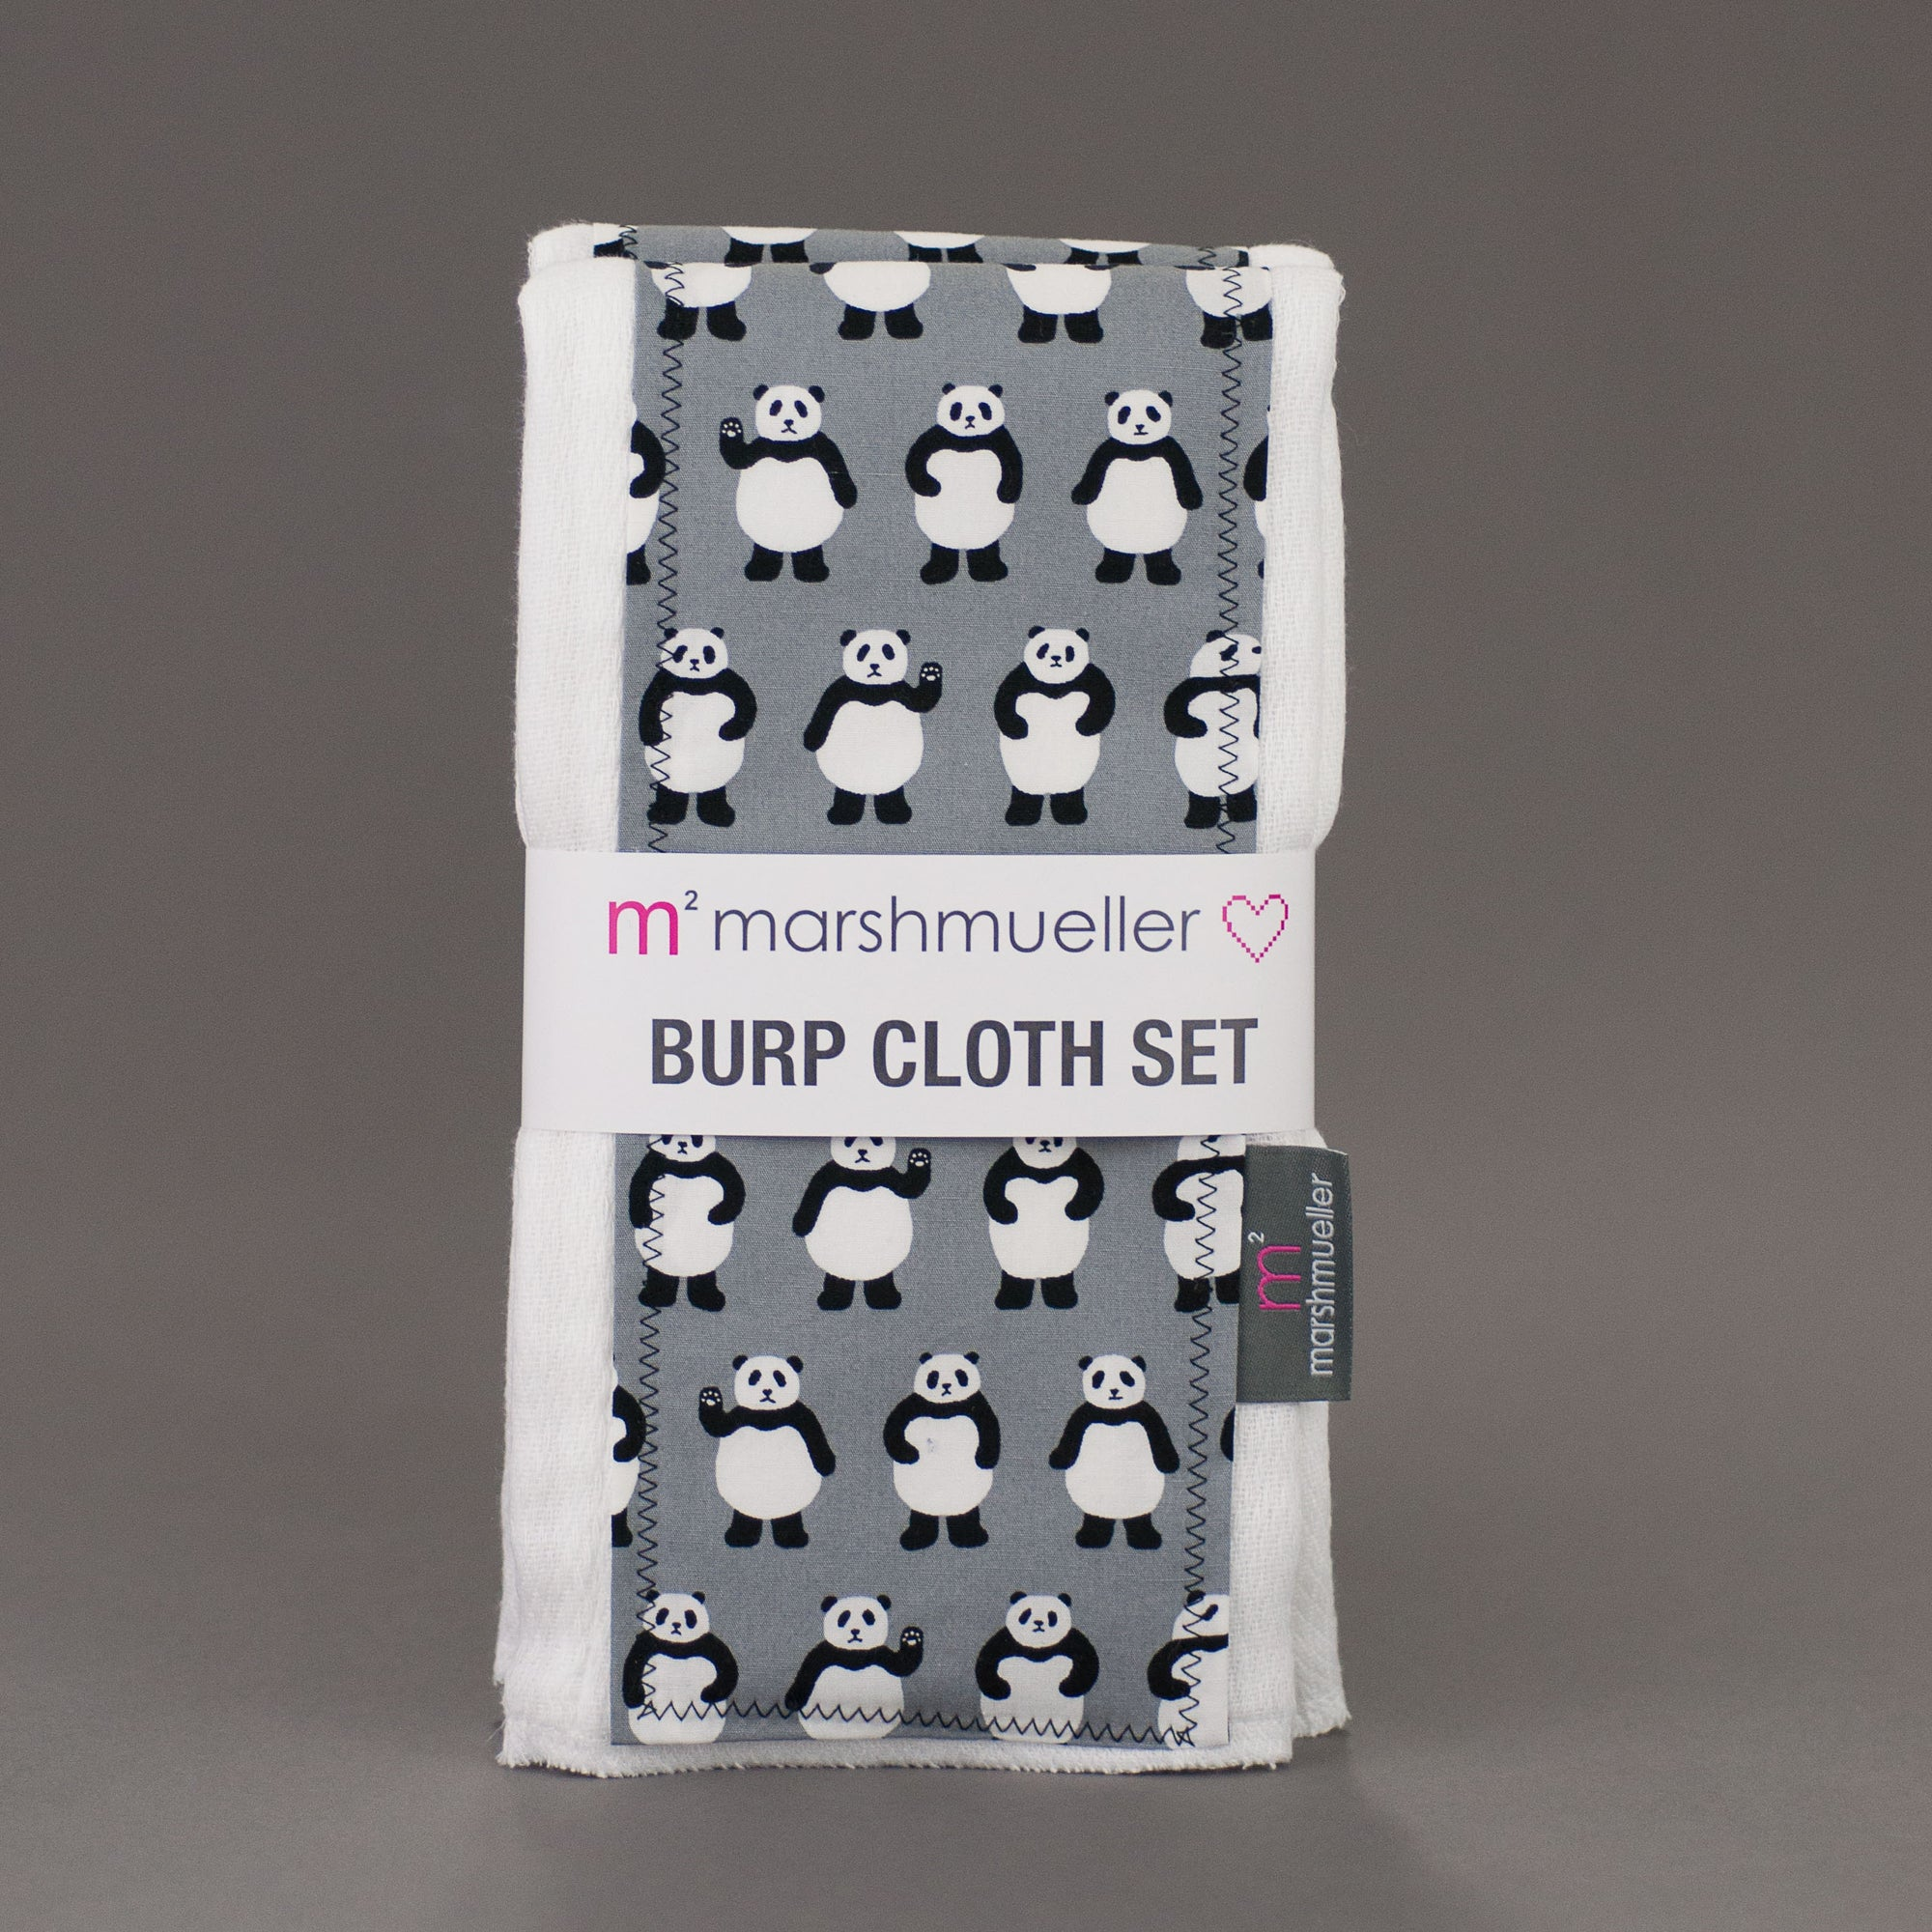 Teeny Panda Bears Burp Cloth Set, Burp Cloth Set, - MarshMueller